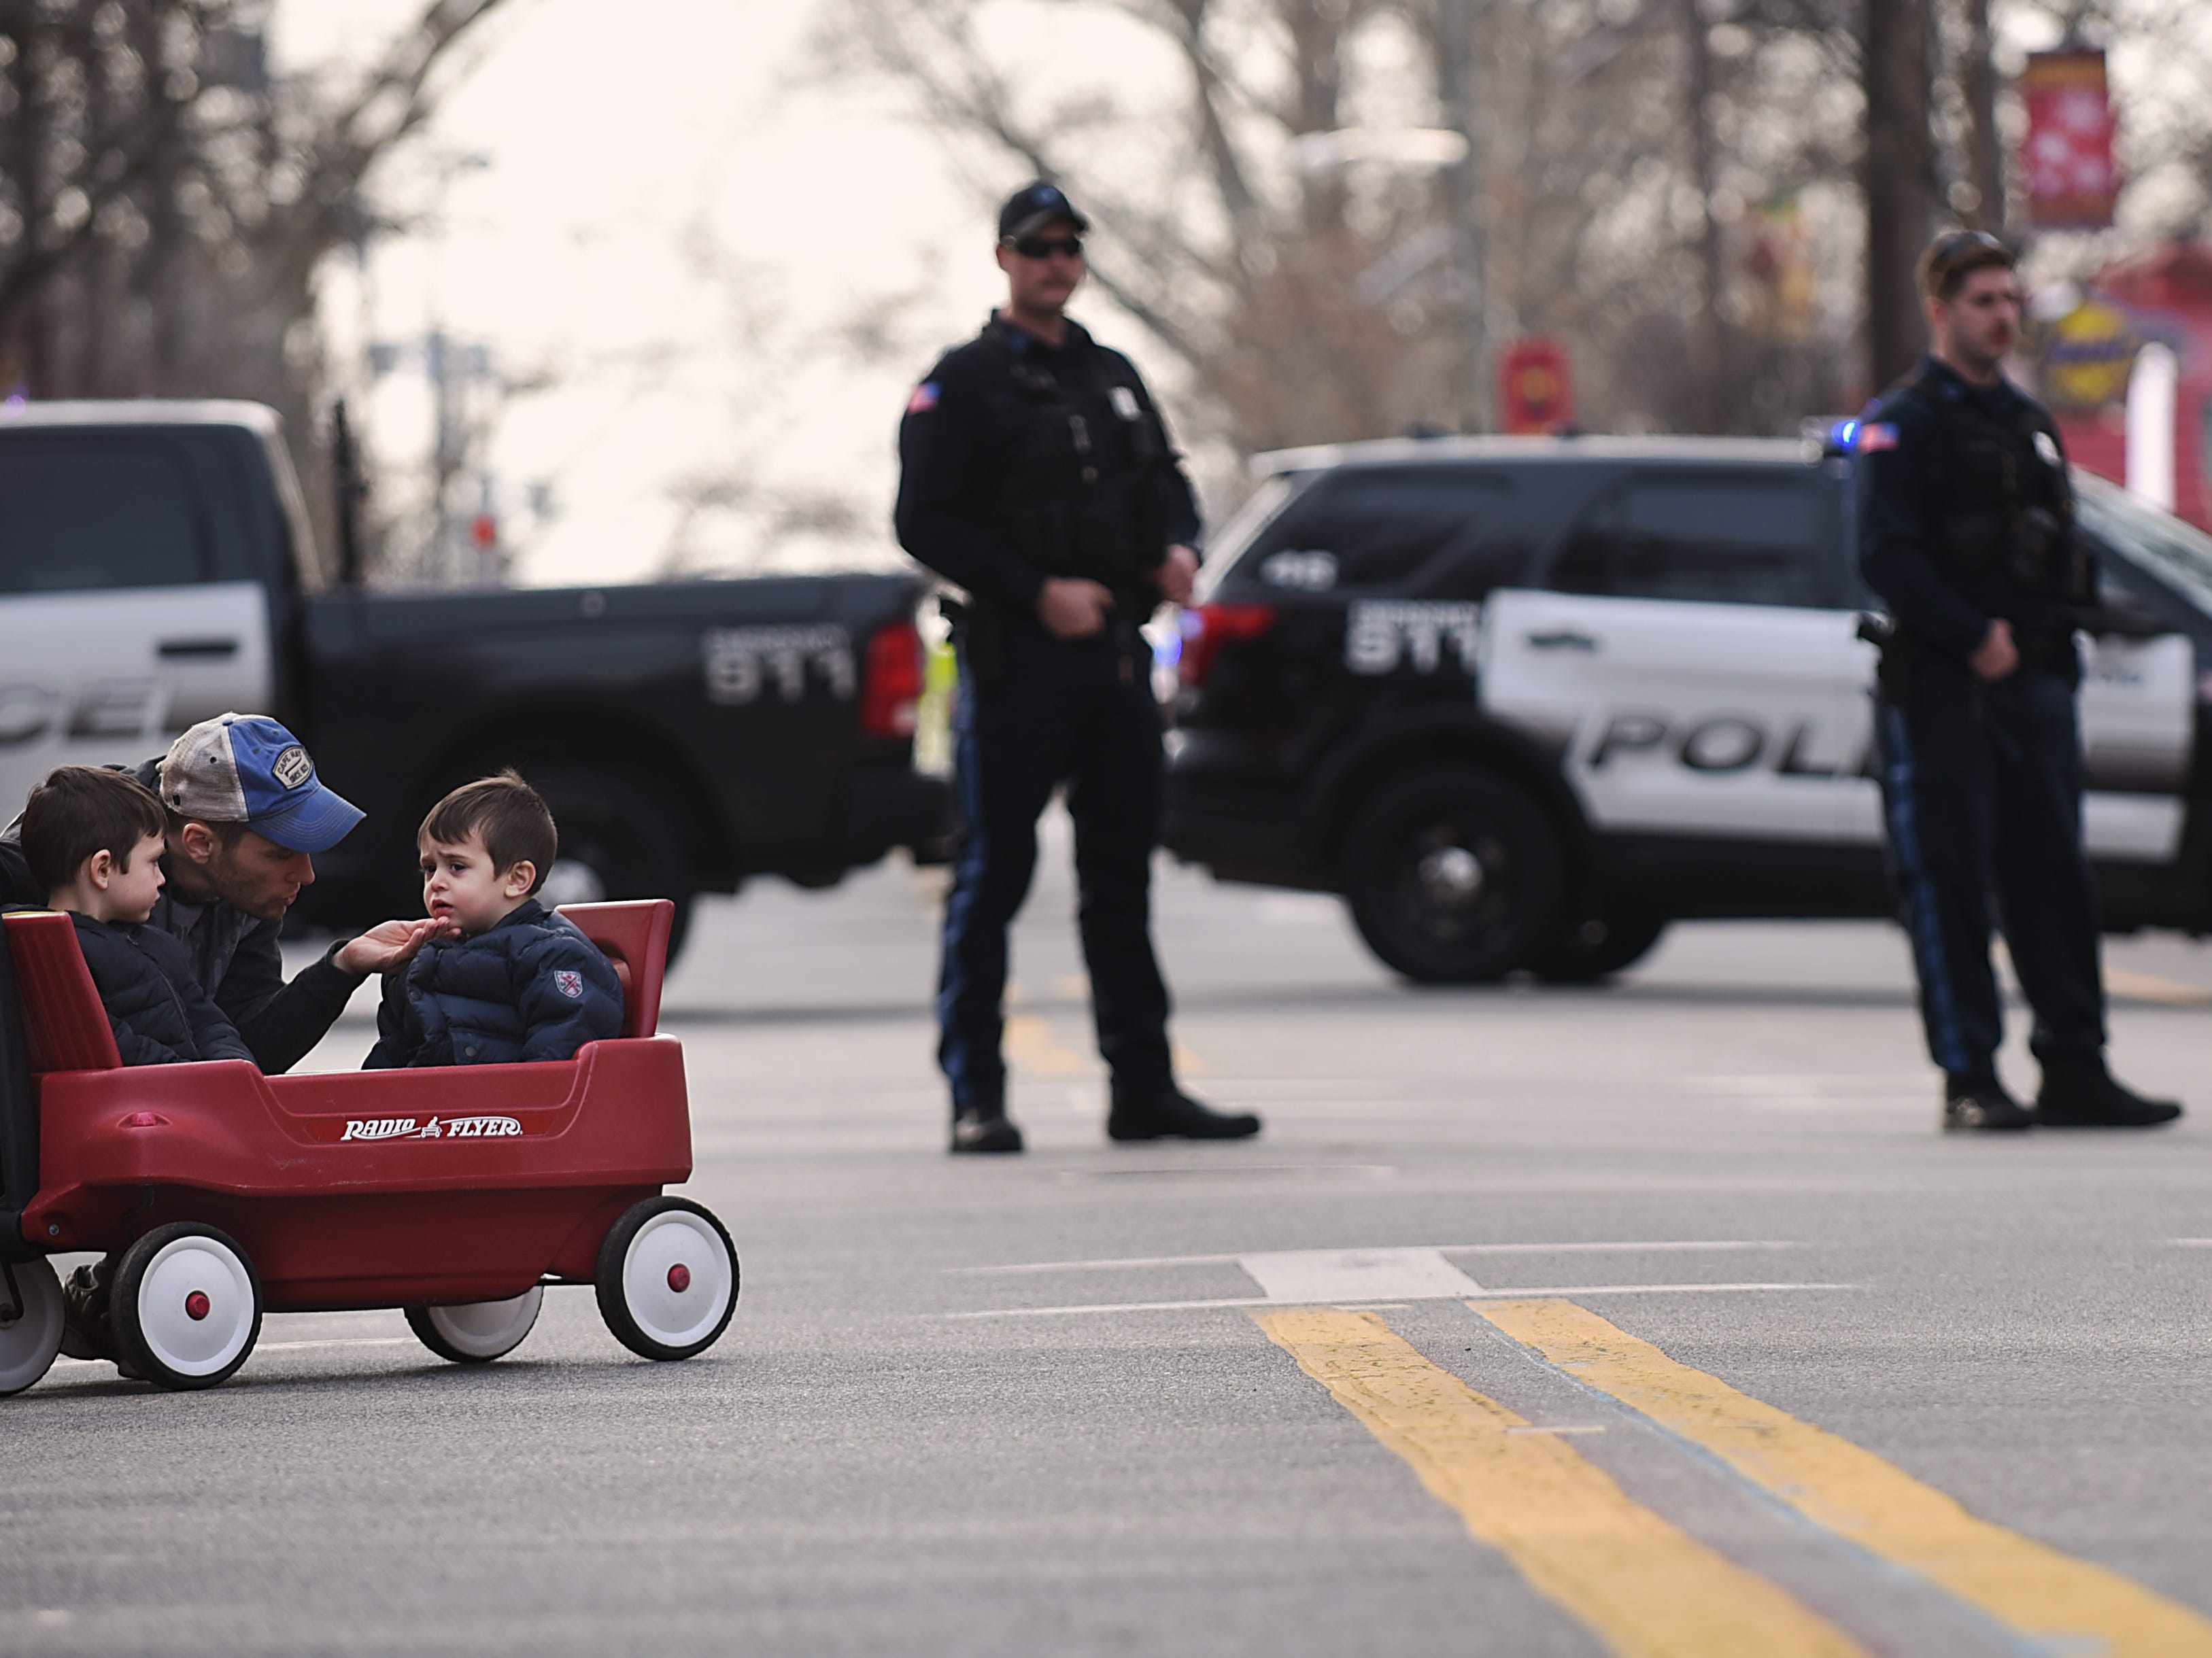 Two children arrive in a red wagon during the Rutherford Football parade in Rutherford on Saturday December 1, 2018.